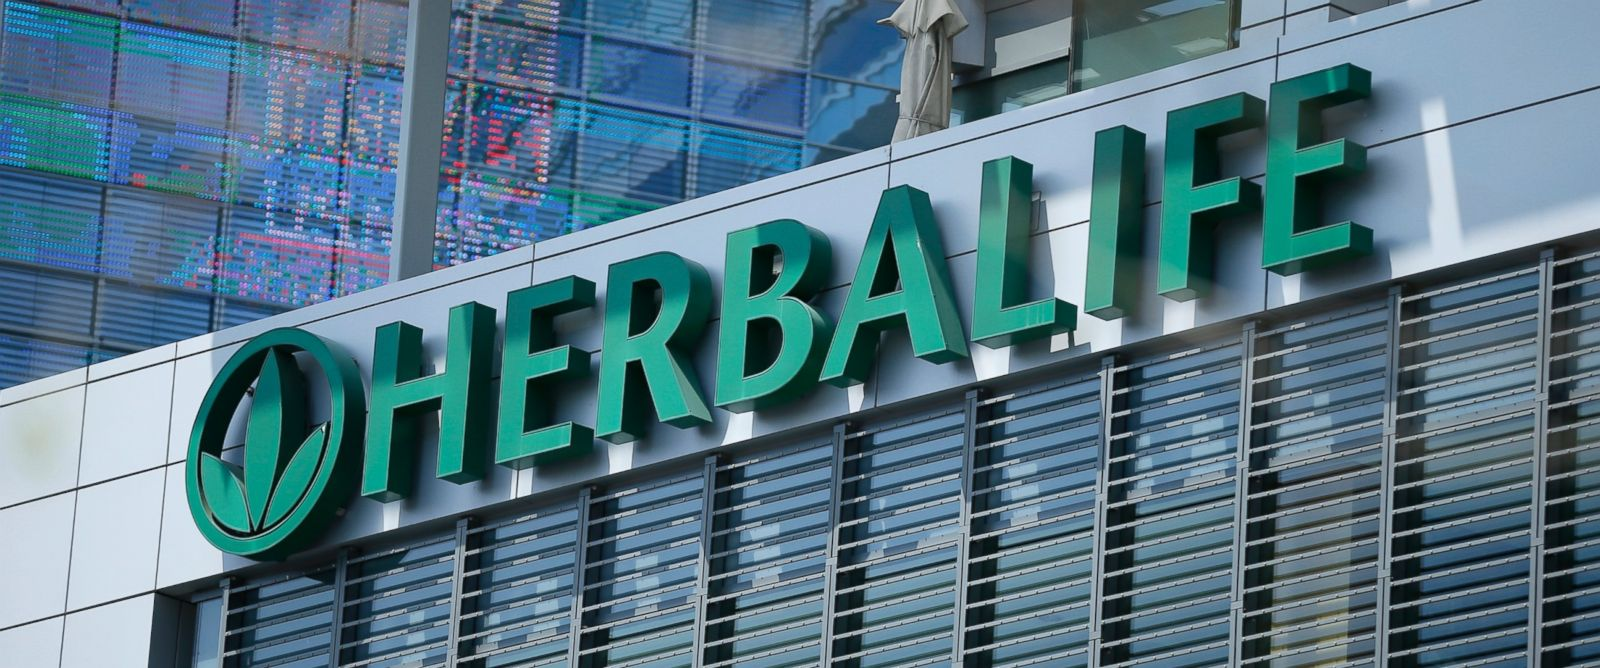 PHOTO: The Herbalife logo is seen on a building housing some of their offices in Los Angeles